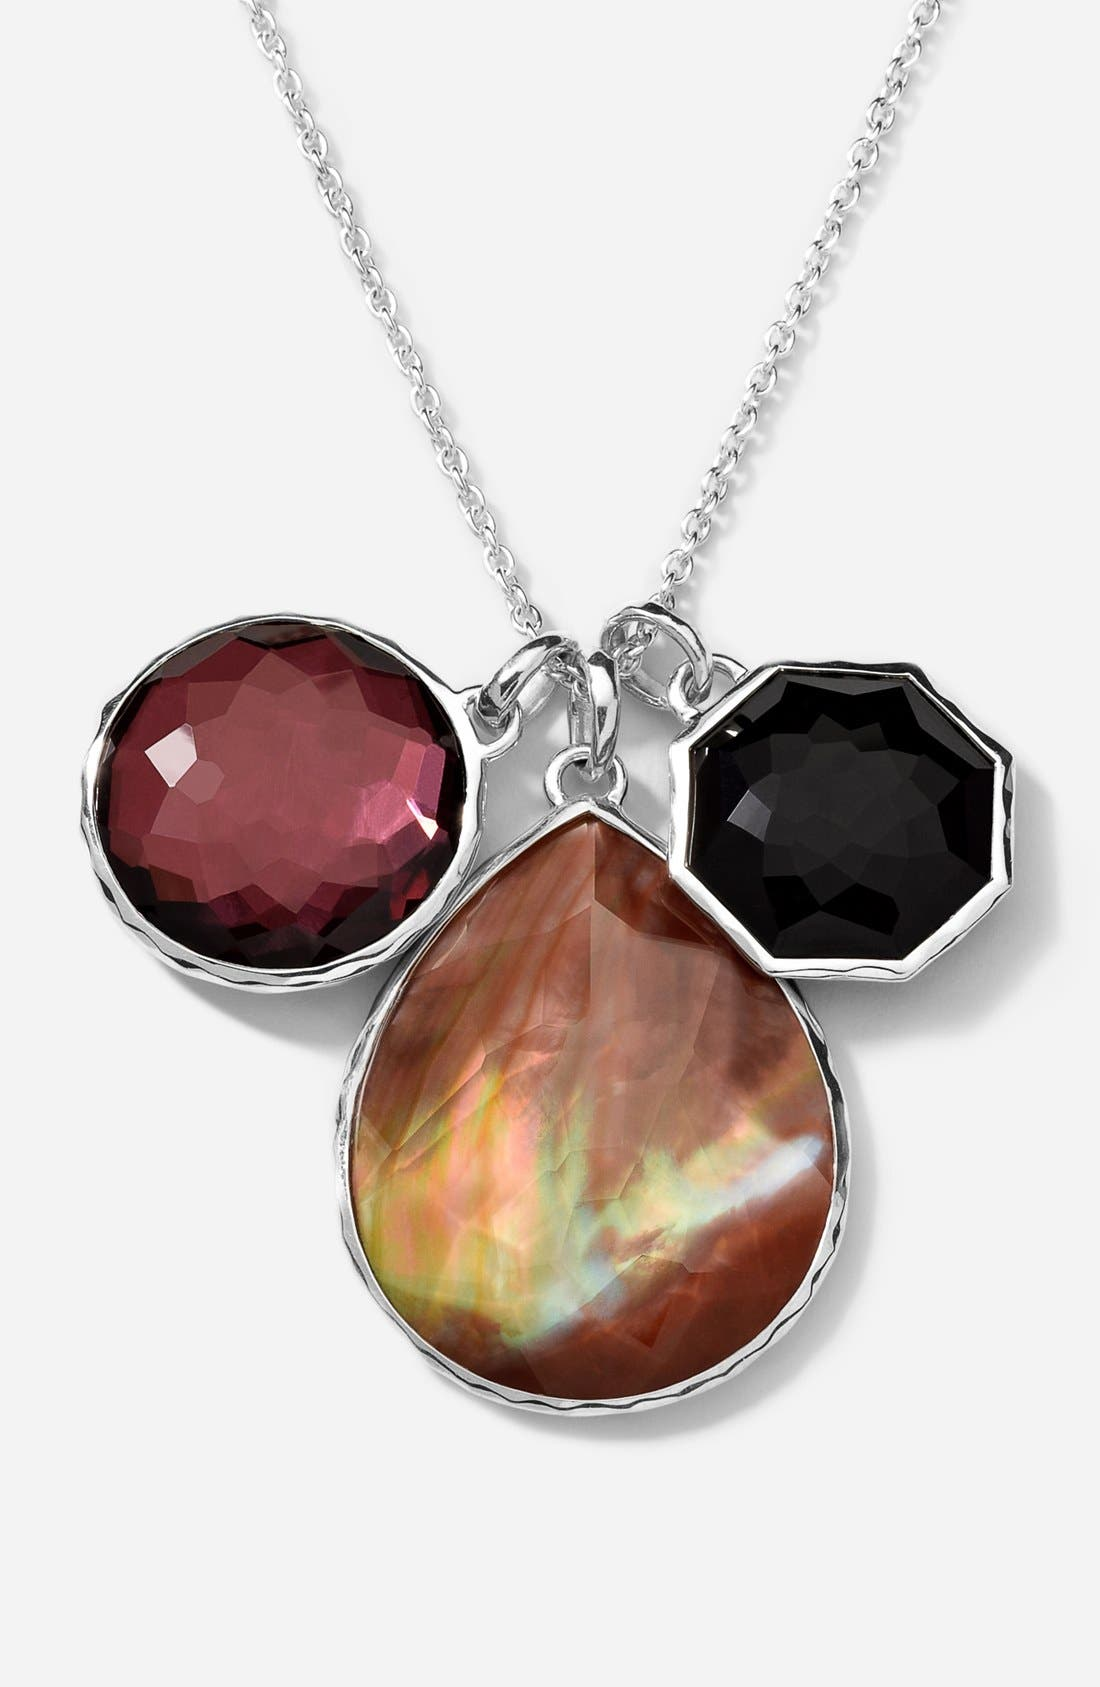 Alternate Image 1 Selected - Ippolita 'Wonderland' Long Triple Charm Necklace (Nordstrom Exclusive)